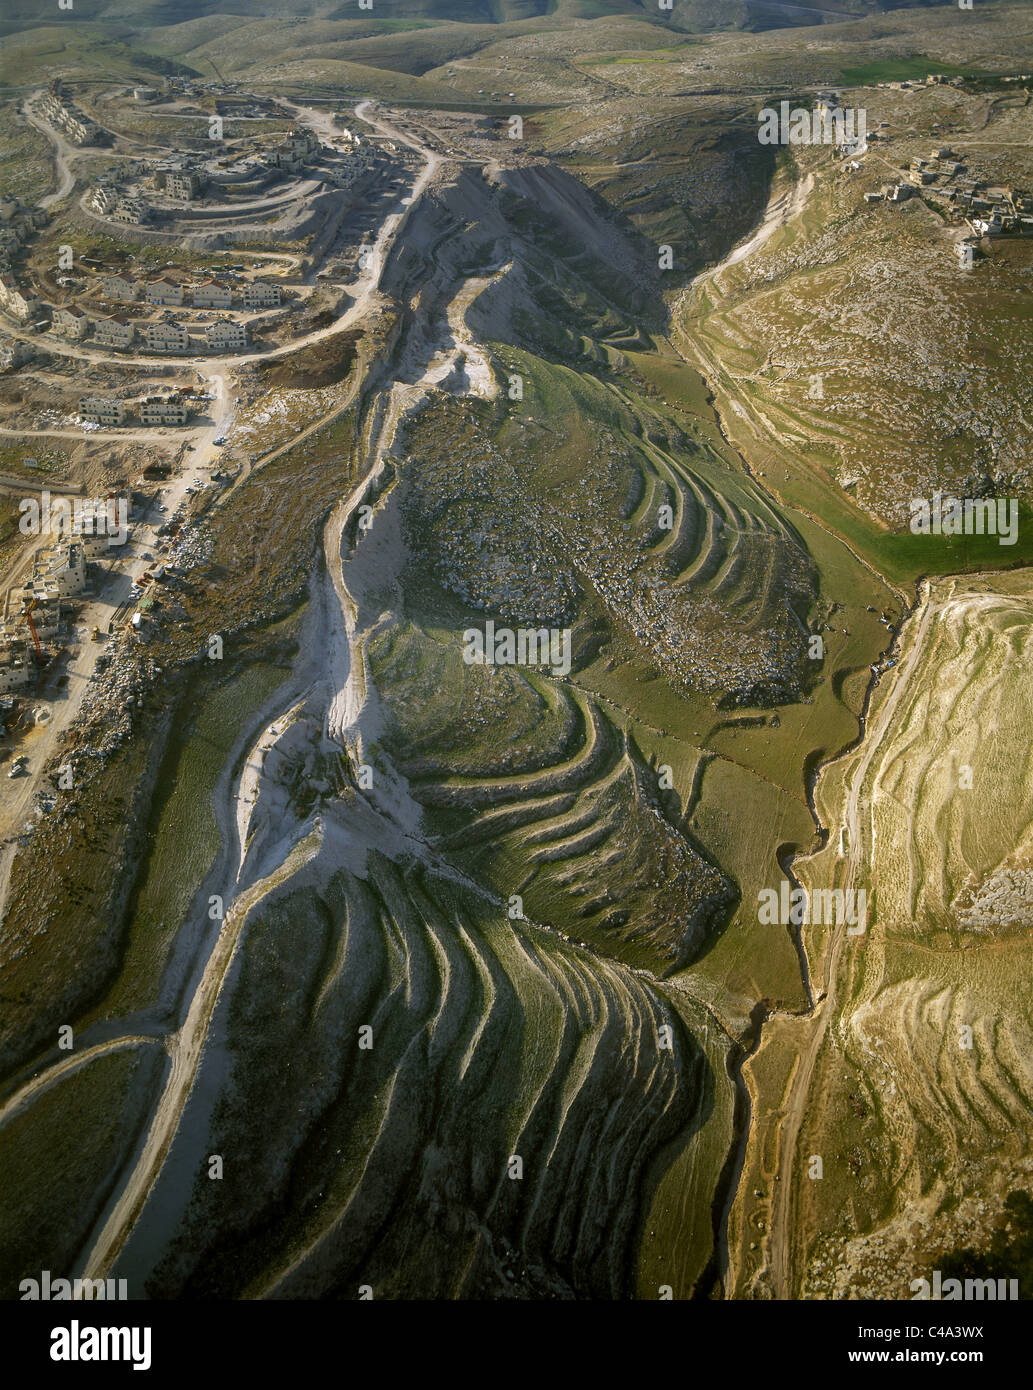 Aerial photograph of an Israeli settlement and an arab village on the hills of Samaria - Stock Image